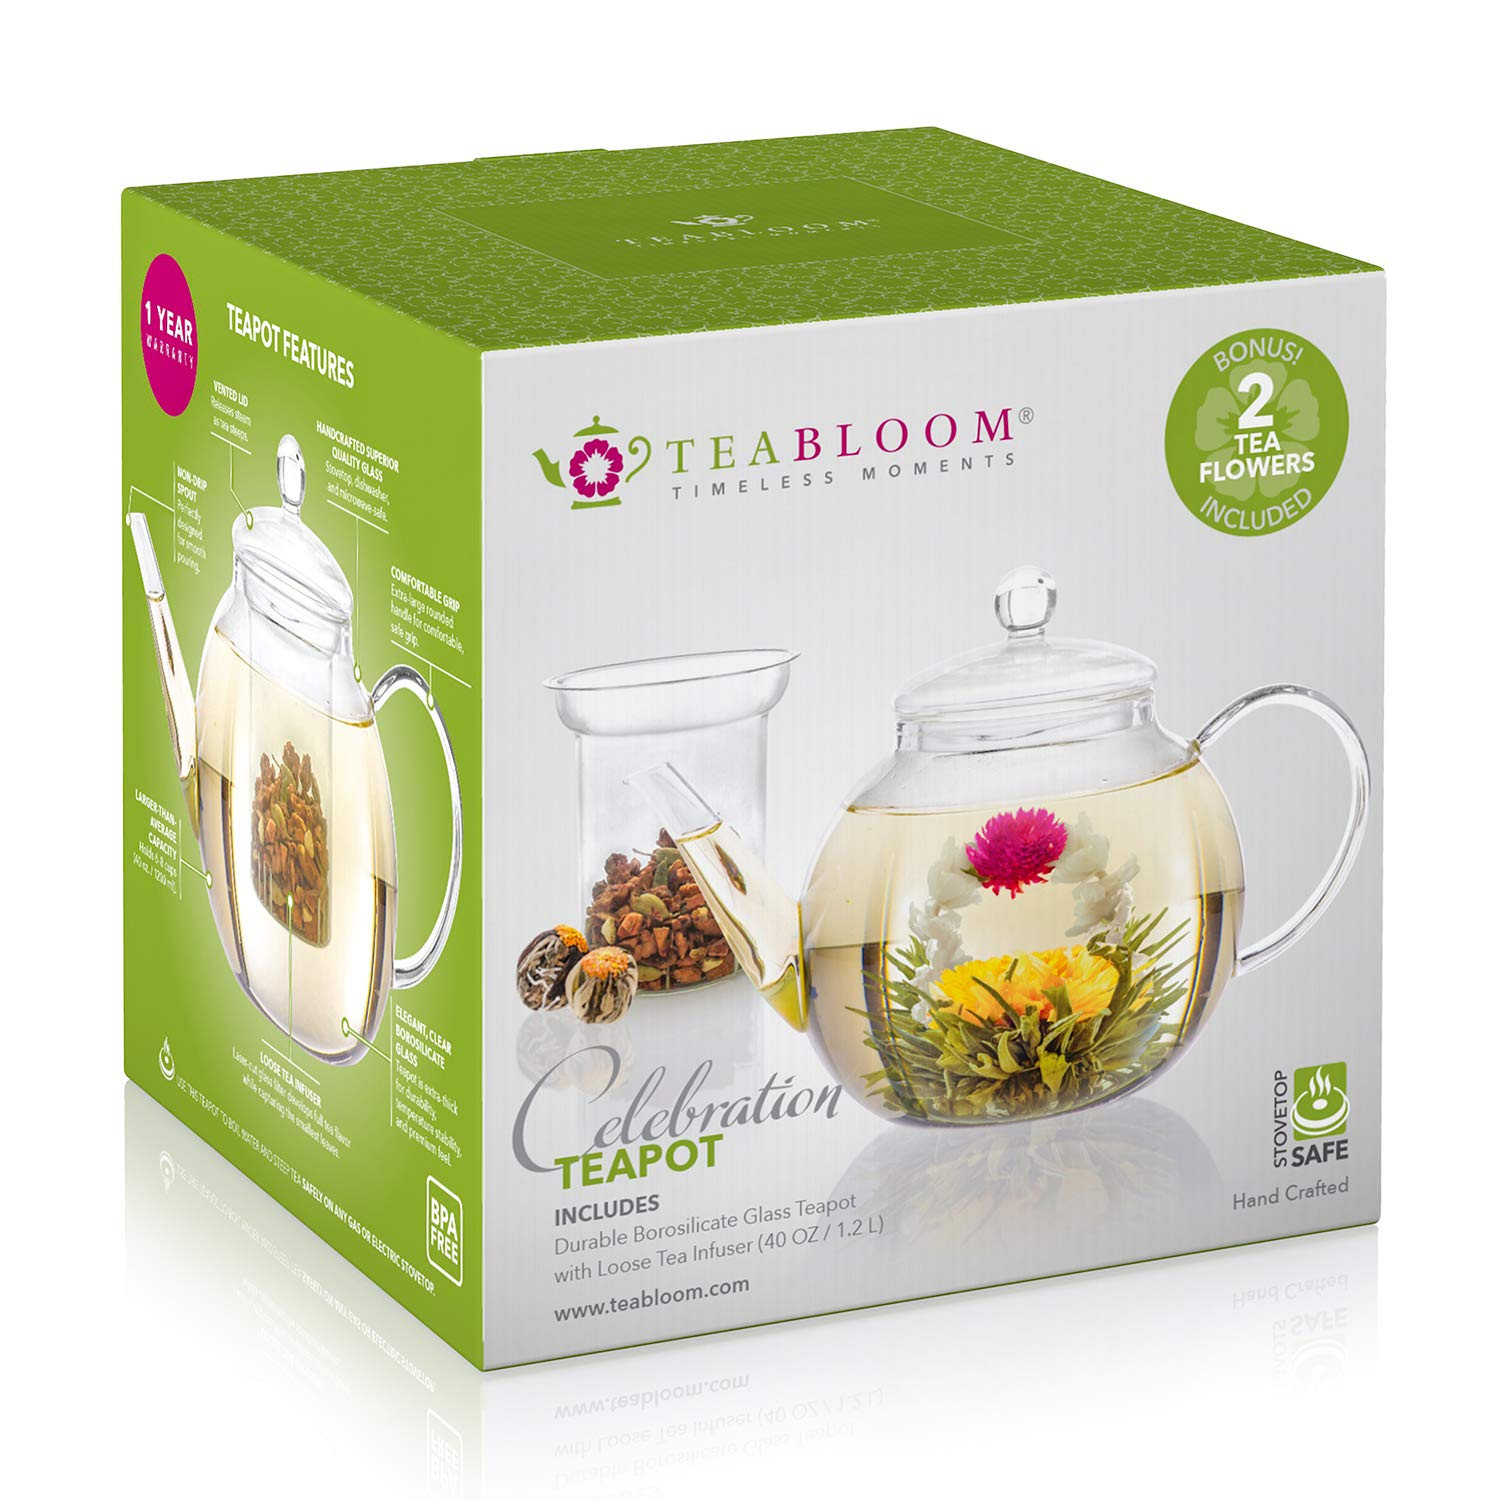 Teabloom Stovetop  Microwave Safe Glass Teapot 3440oz10001200ml with Removable Loose Tea Glass